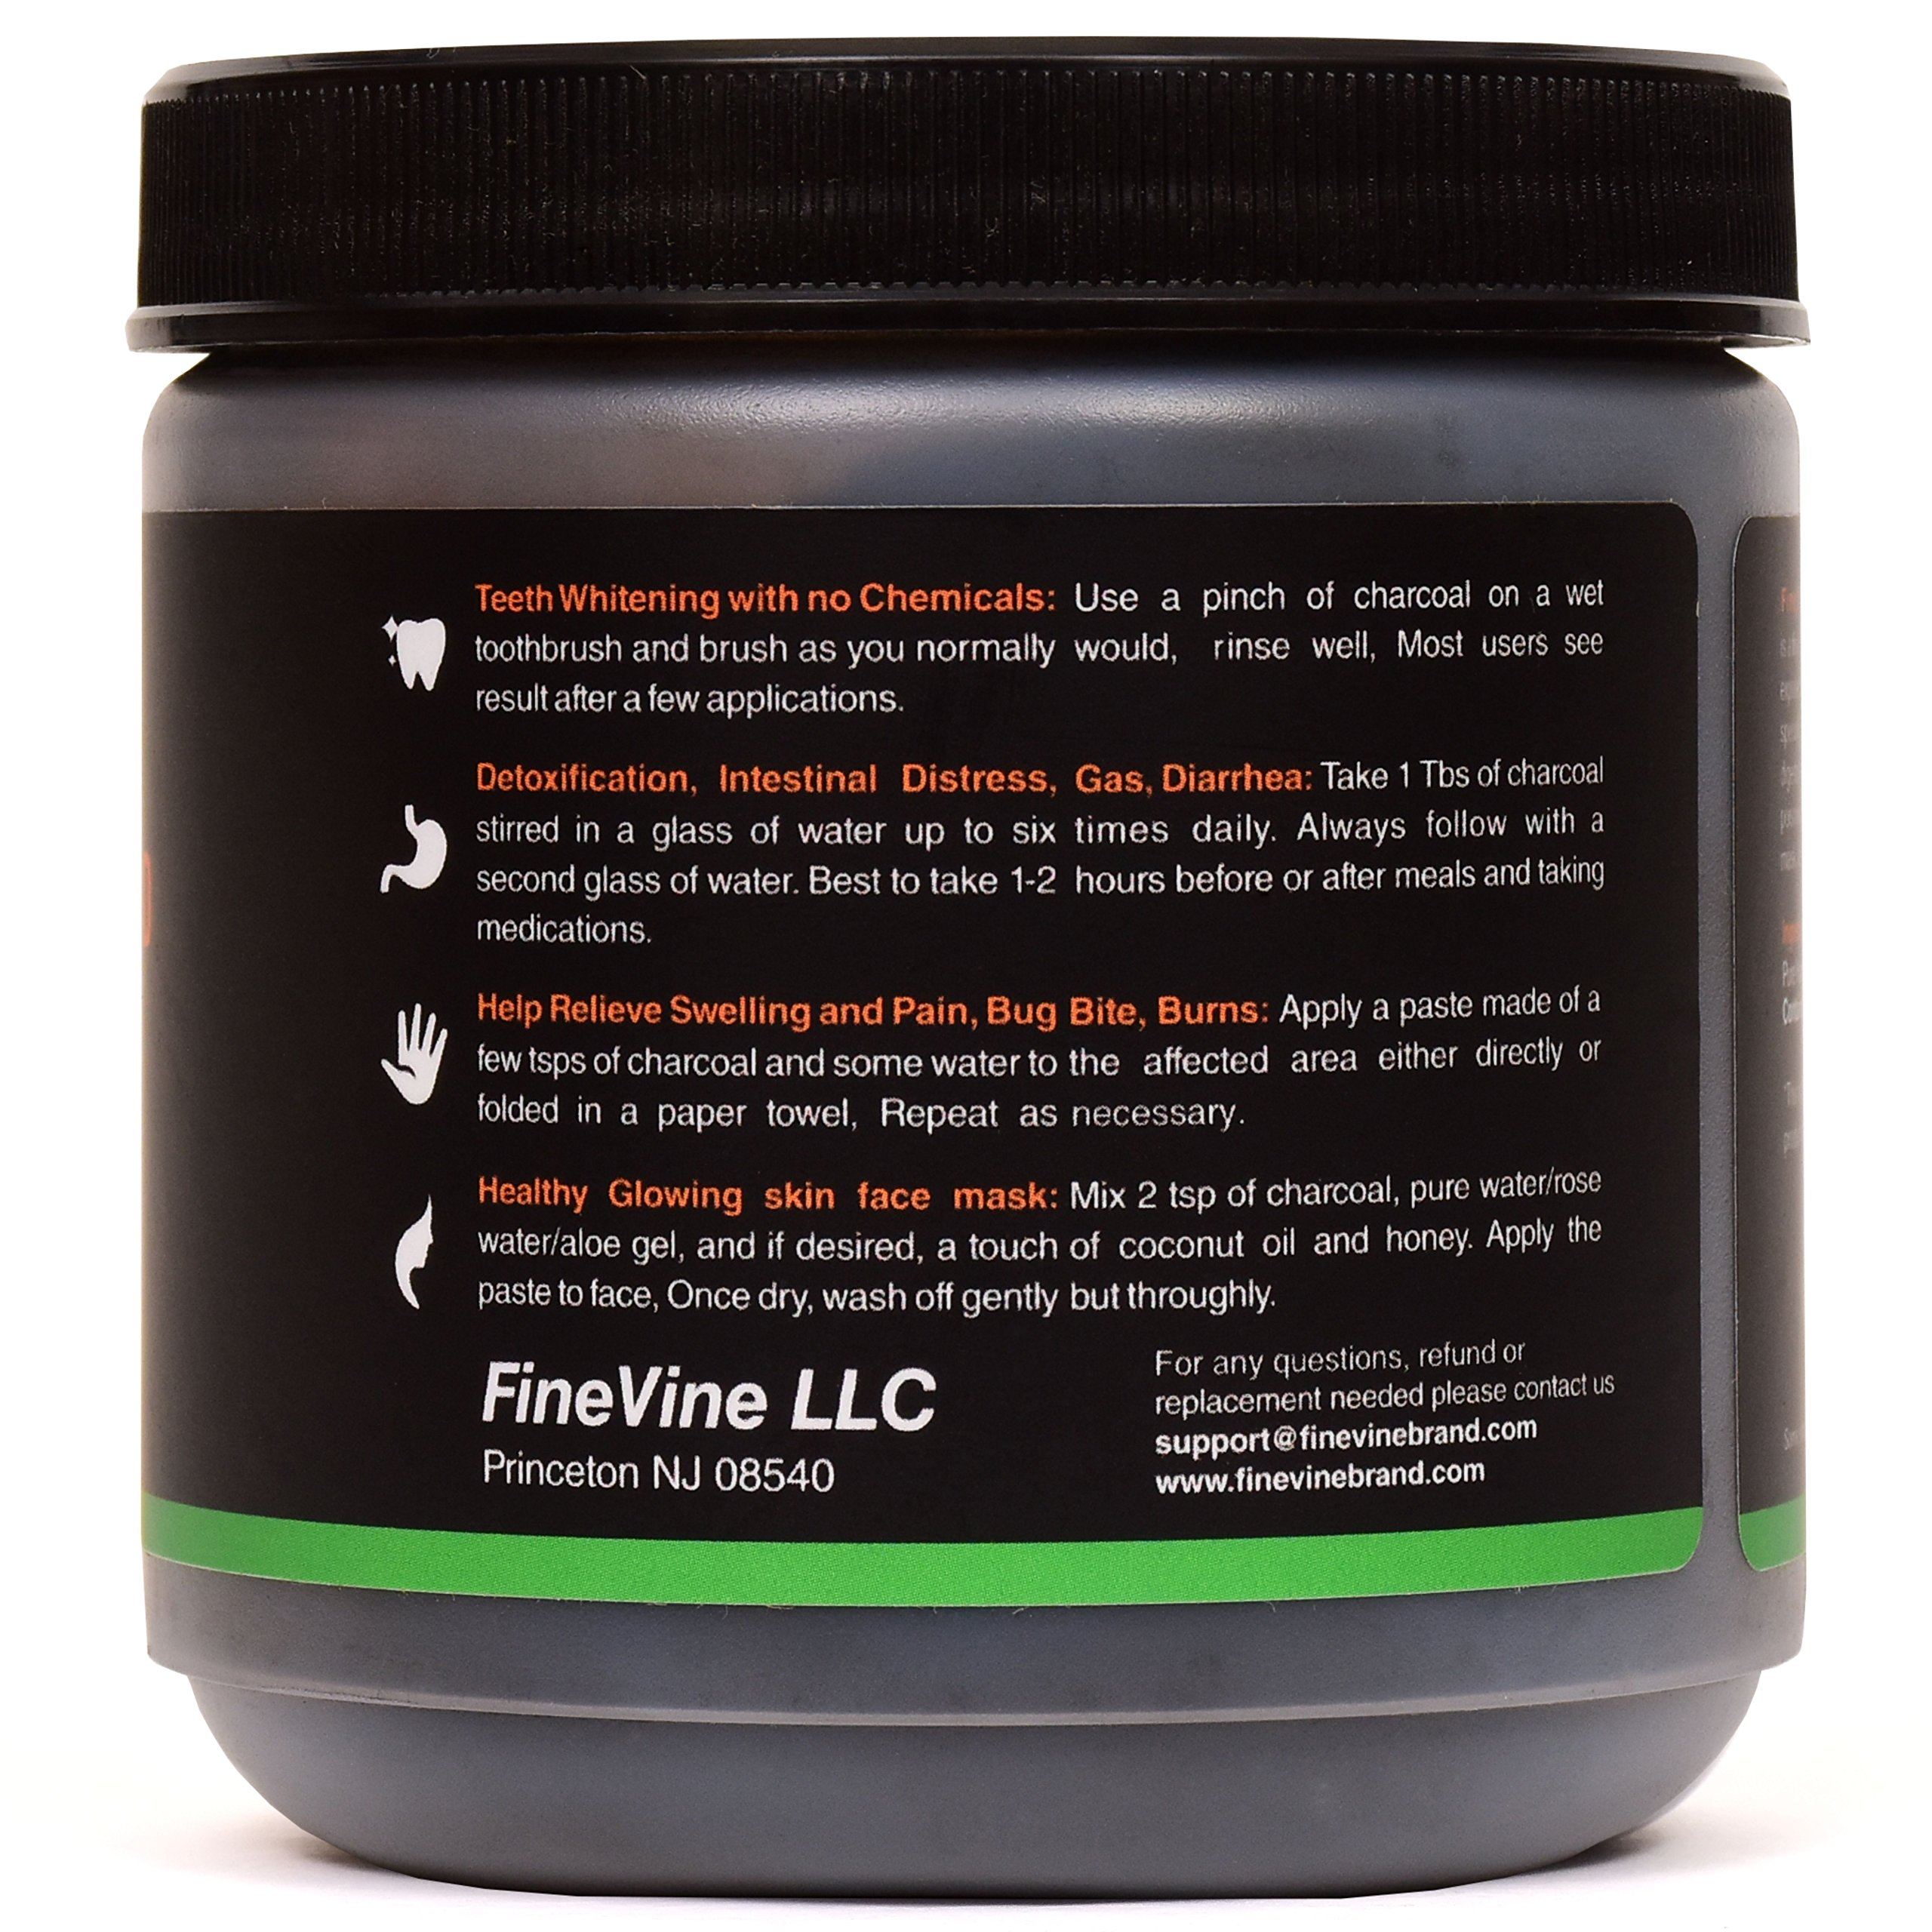 Activated Hardwood Charcoal Powder - Made in USA - Food Grade for Detox, Teeth whitening, Face Mask, Helps Digestion, Bug Bites, Treats Poisoning and Wounds. by FineVine (Image #2)